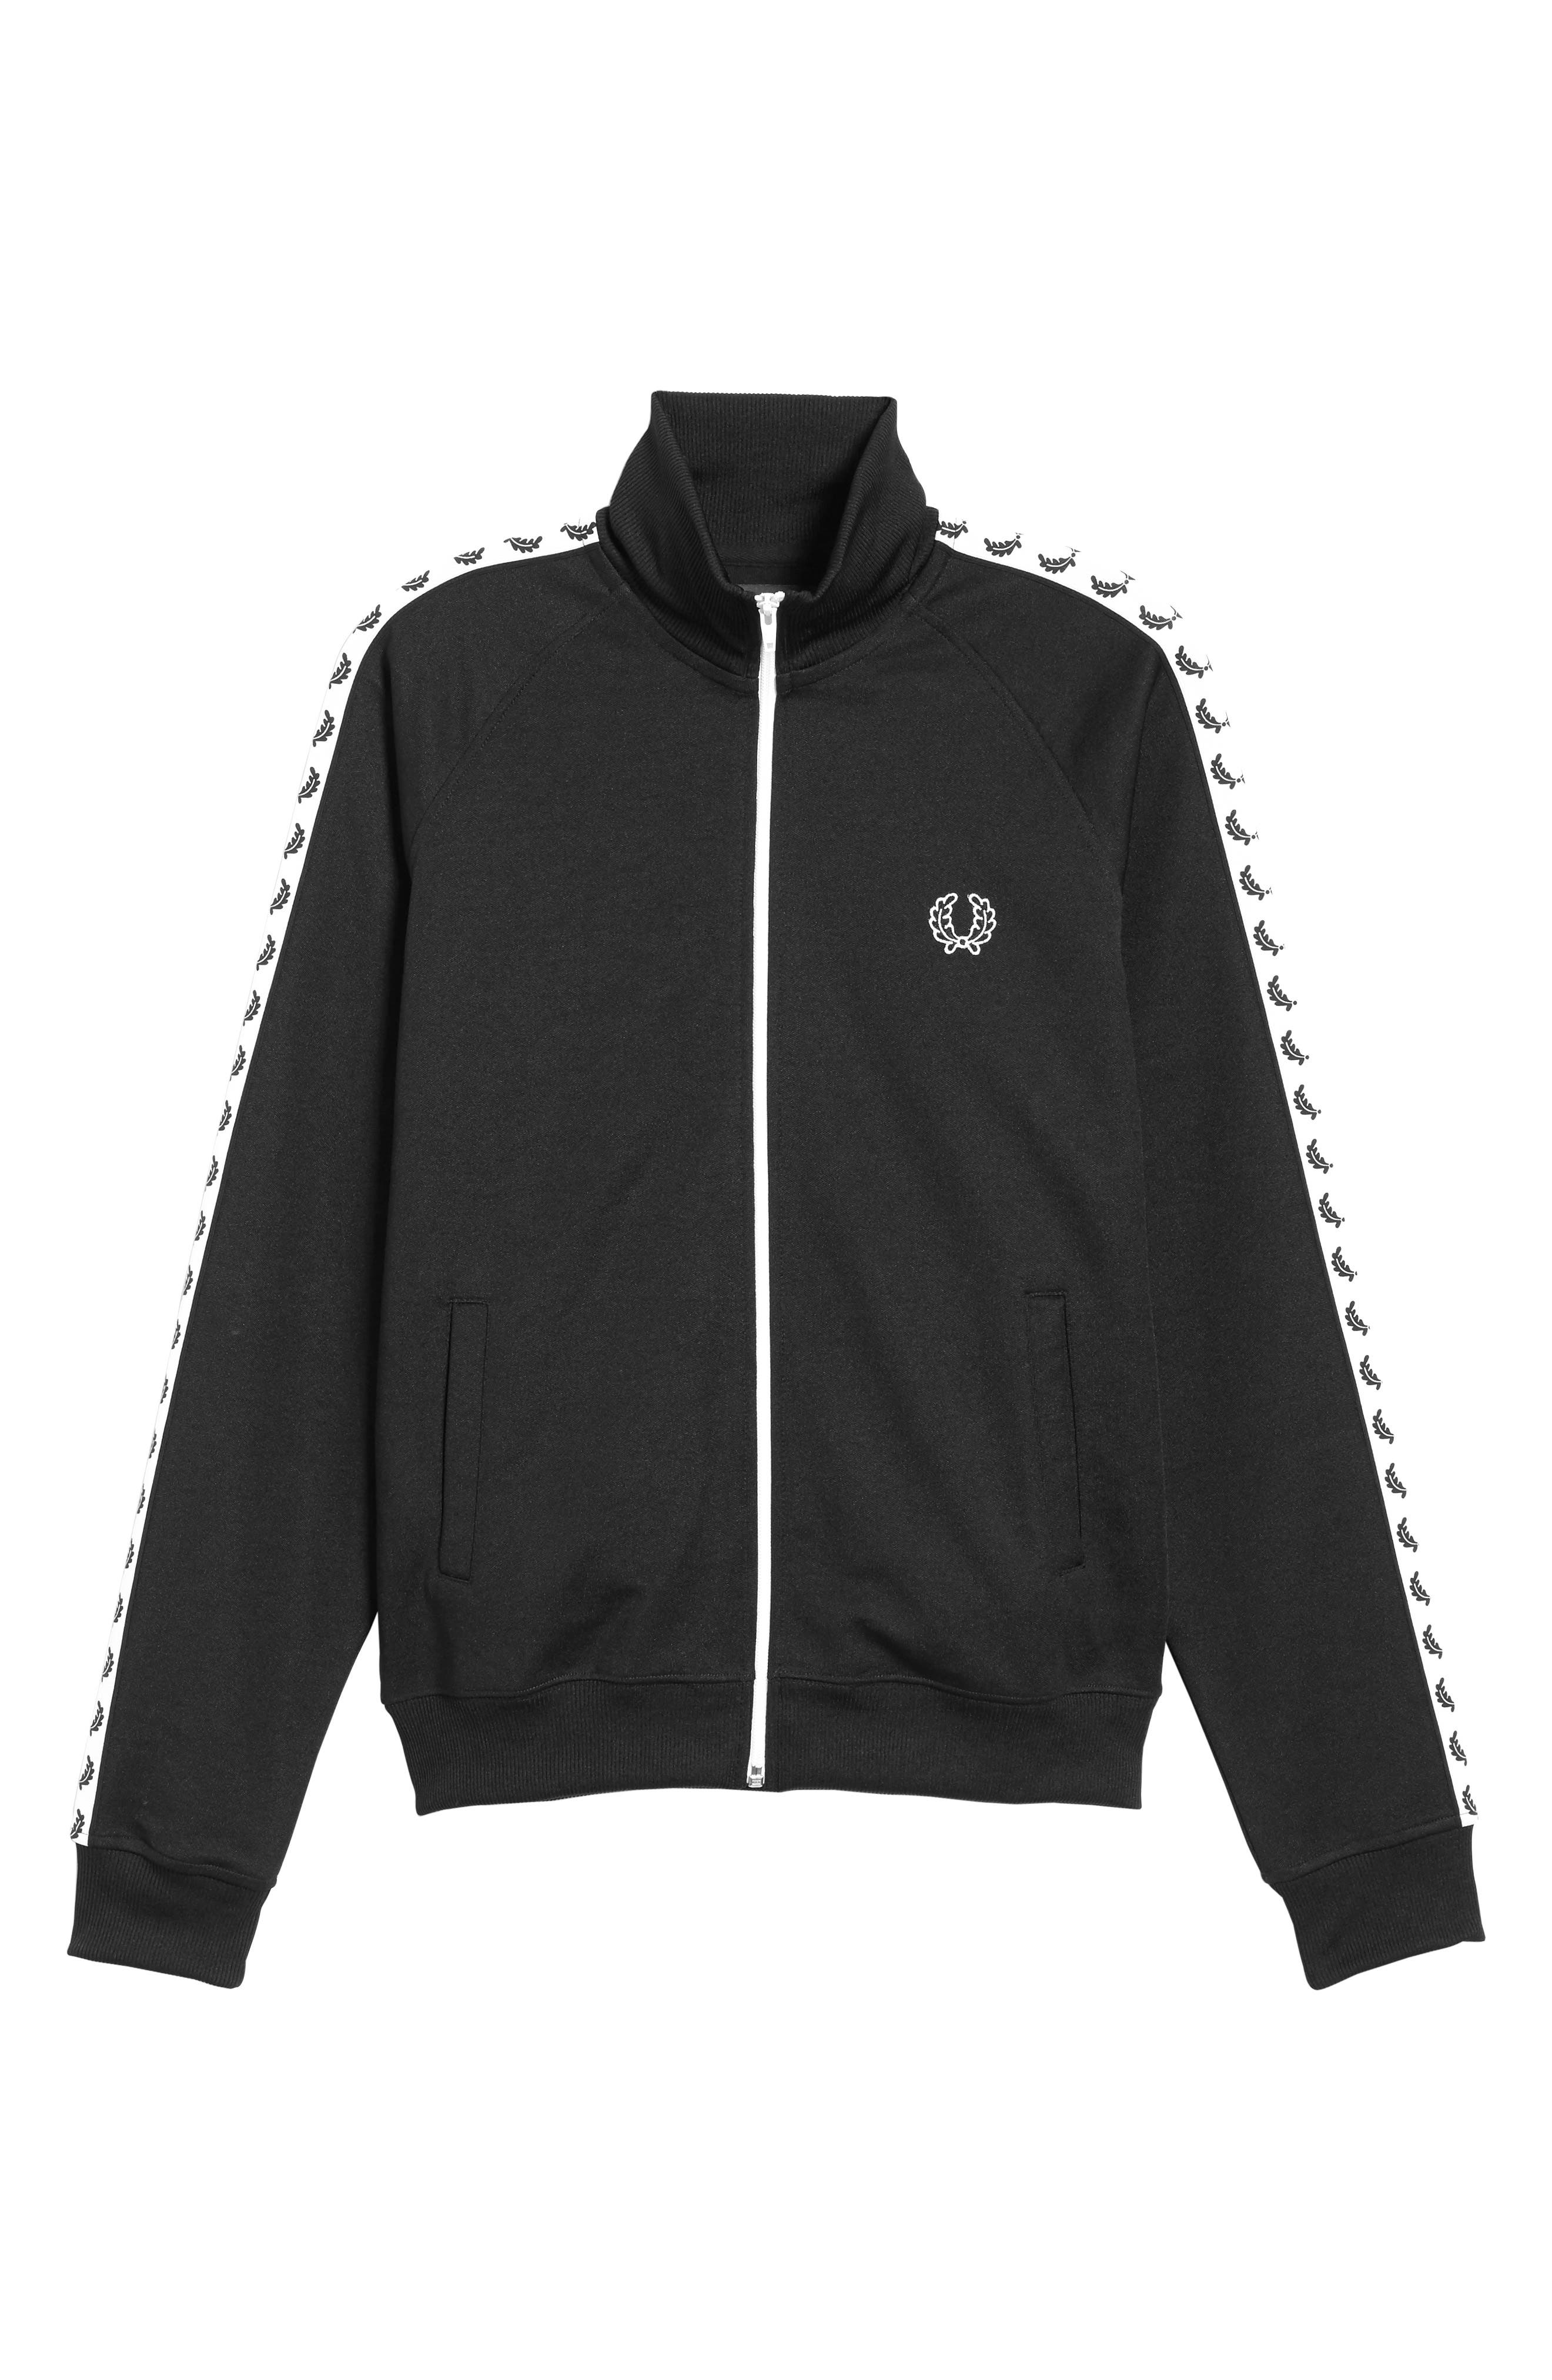 FRED PERRY,                             Laurel Tape Track Jacket,                             Alternate thumbnail 5, color,                             002